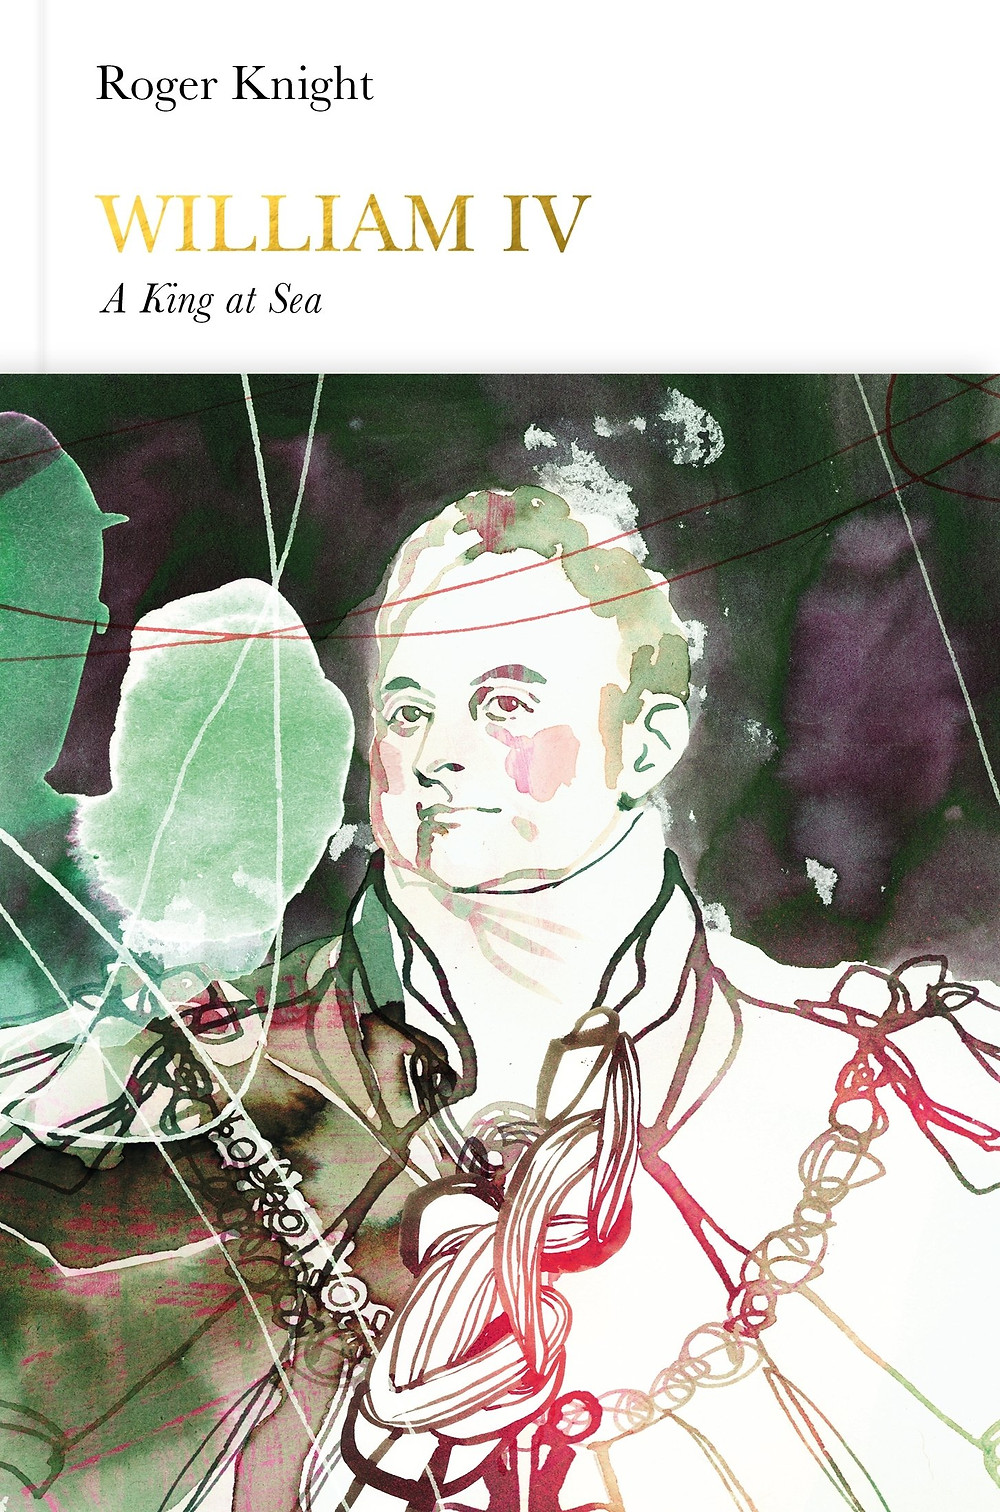 William IV, A King at Sea by Roger Knight, hardback book (penguin monarchs). He was King of Great Britain, the fifth king of the house of Hanover